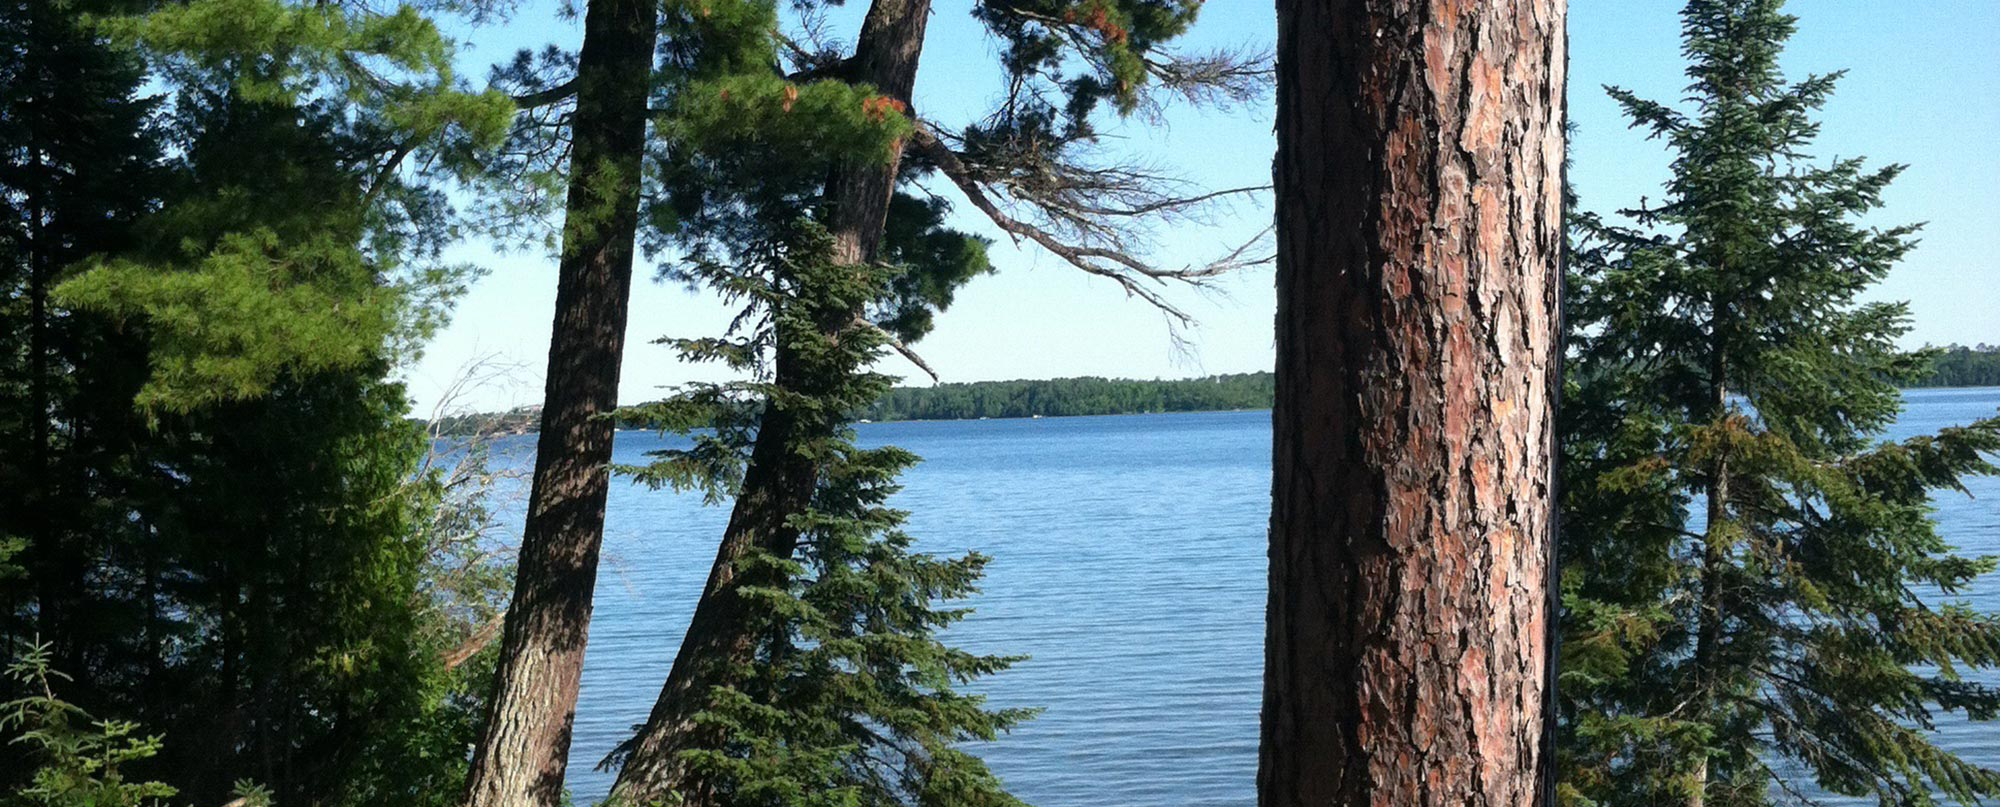 View of a lake between a couple of pine trees